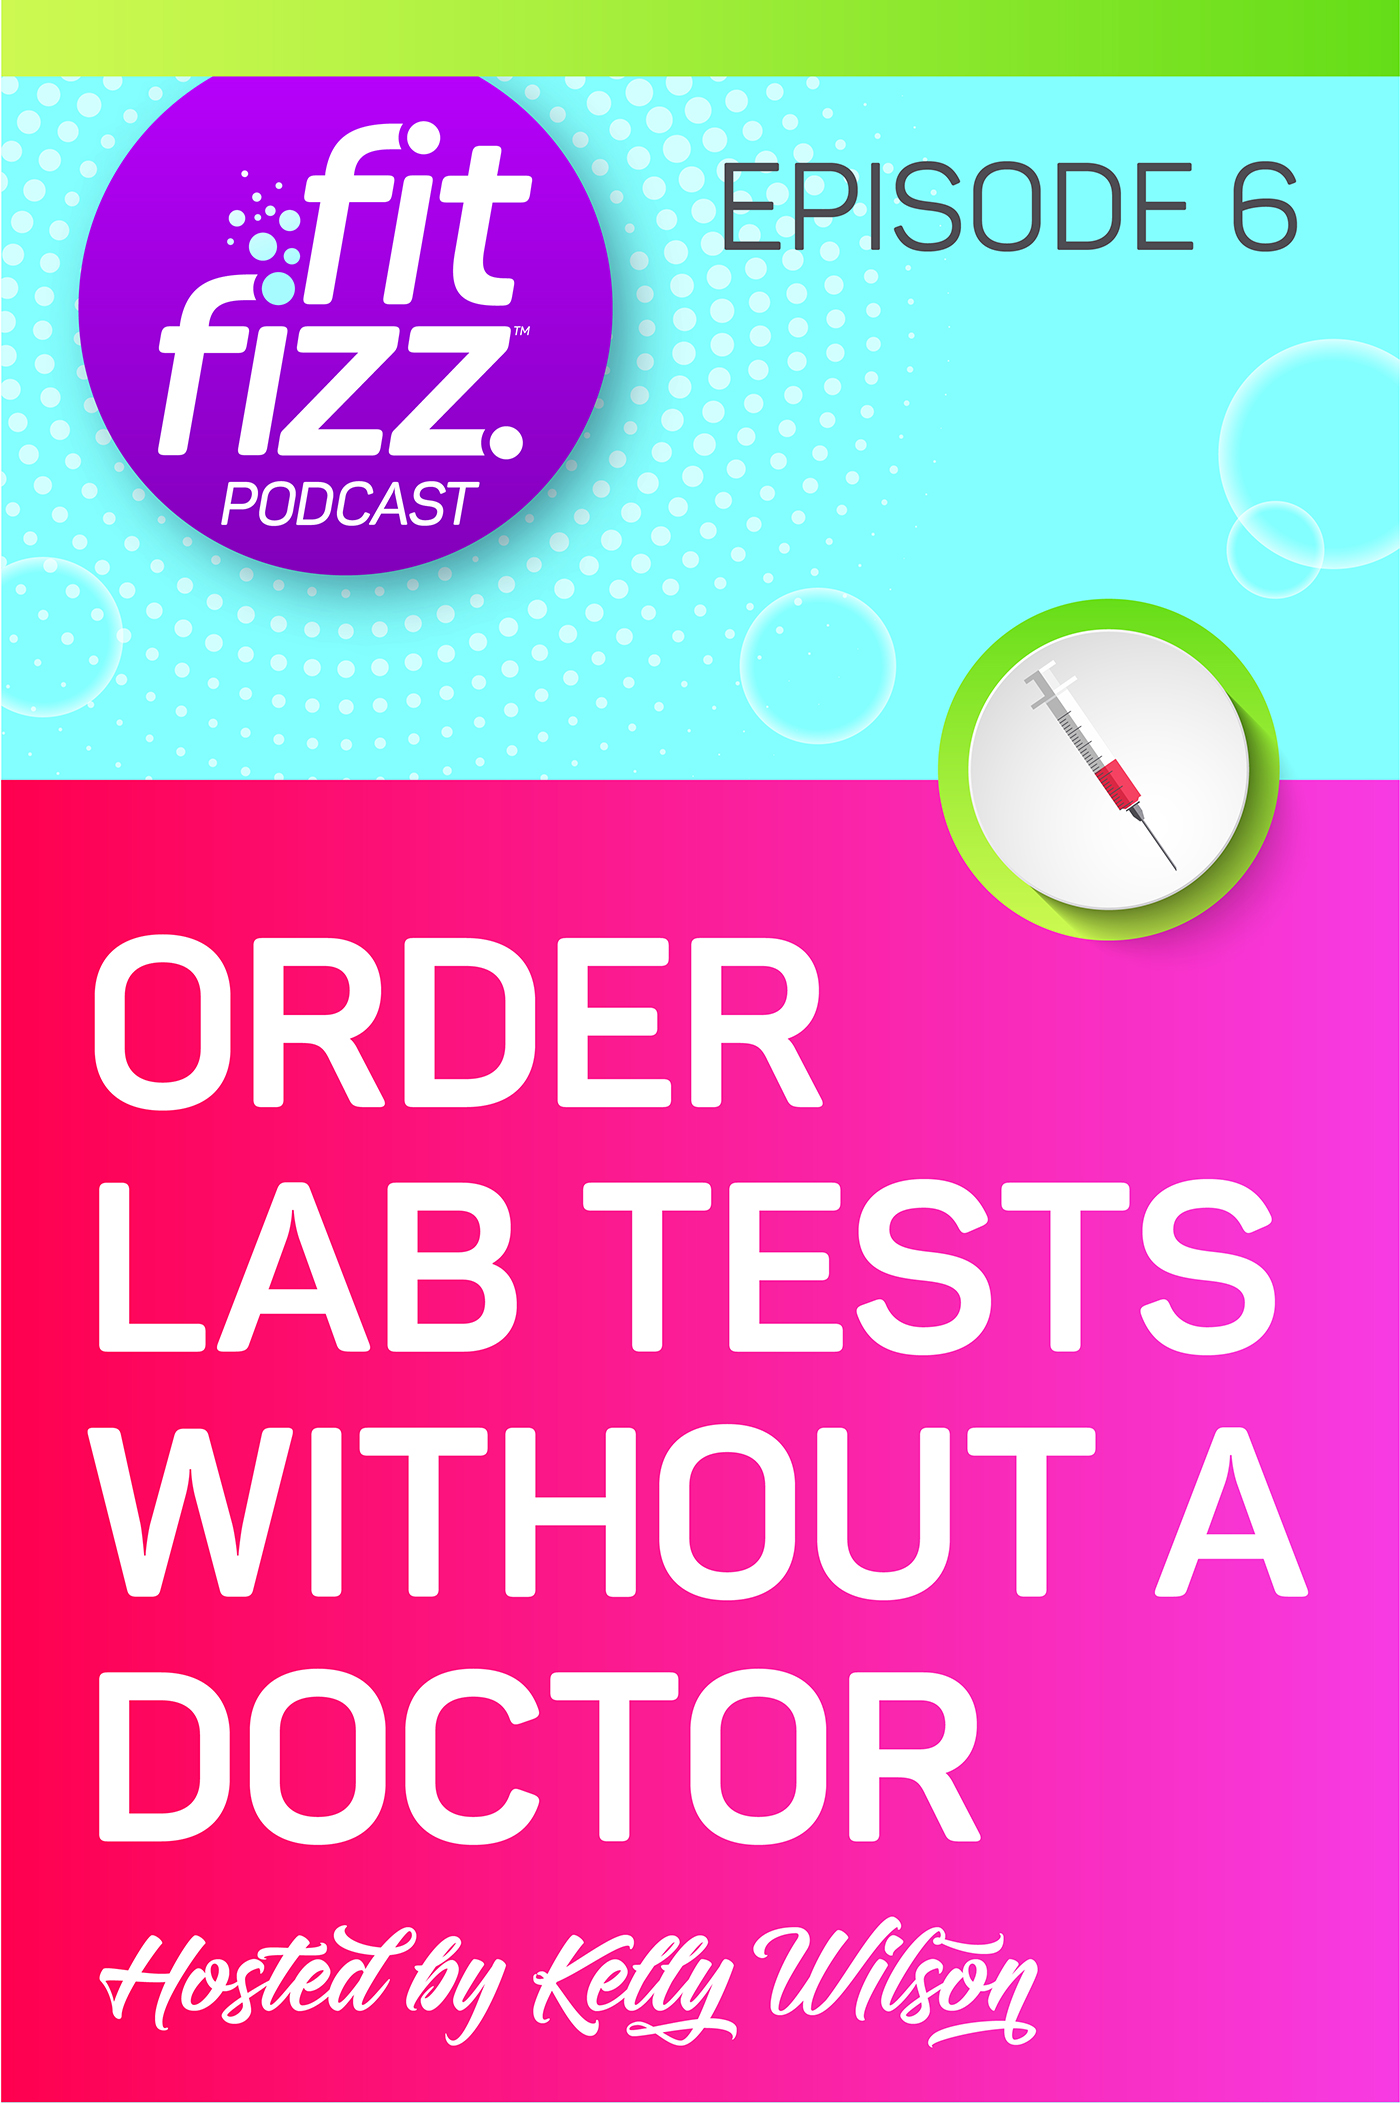 Top tips on lab testing that youmay have not heard before — especially from your doctor. Learn how to order your own lab without a doctor. #health #labtests #labtesting #labresults #diabetes #cholesterol #hashimotos #hormones #thyroid #PCOS #fibromyalgia